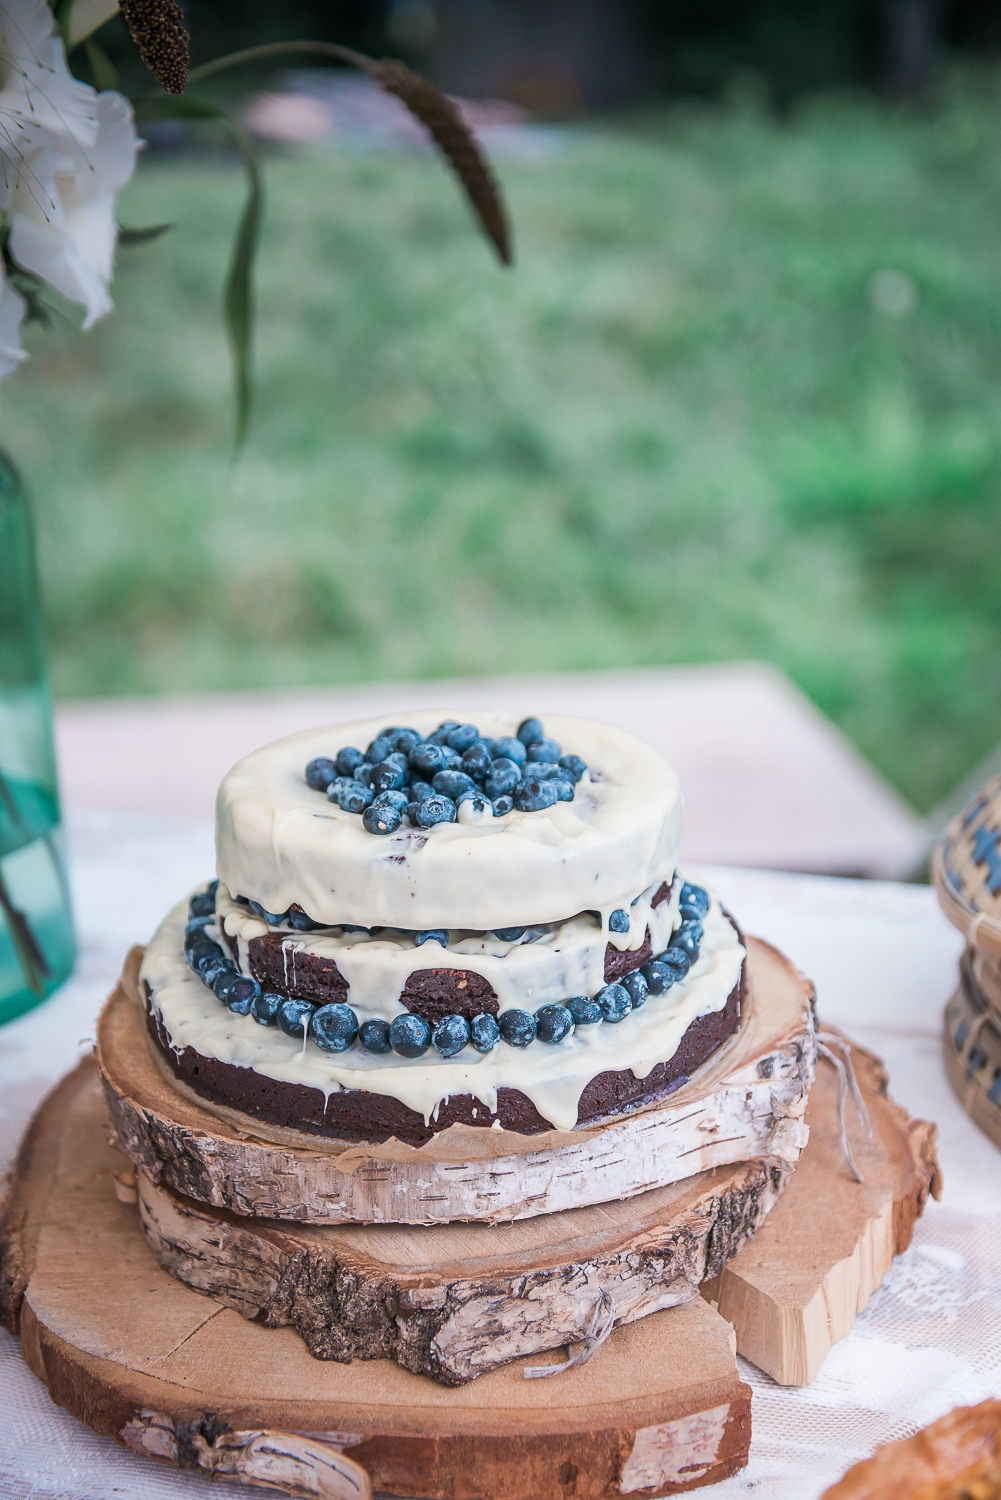 Delicious home made wedding cake with blue berries